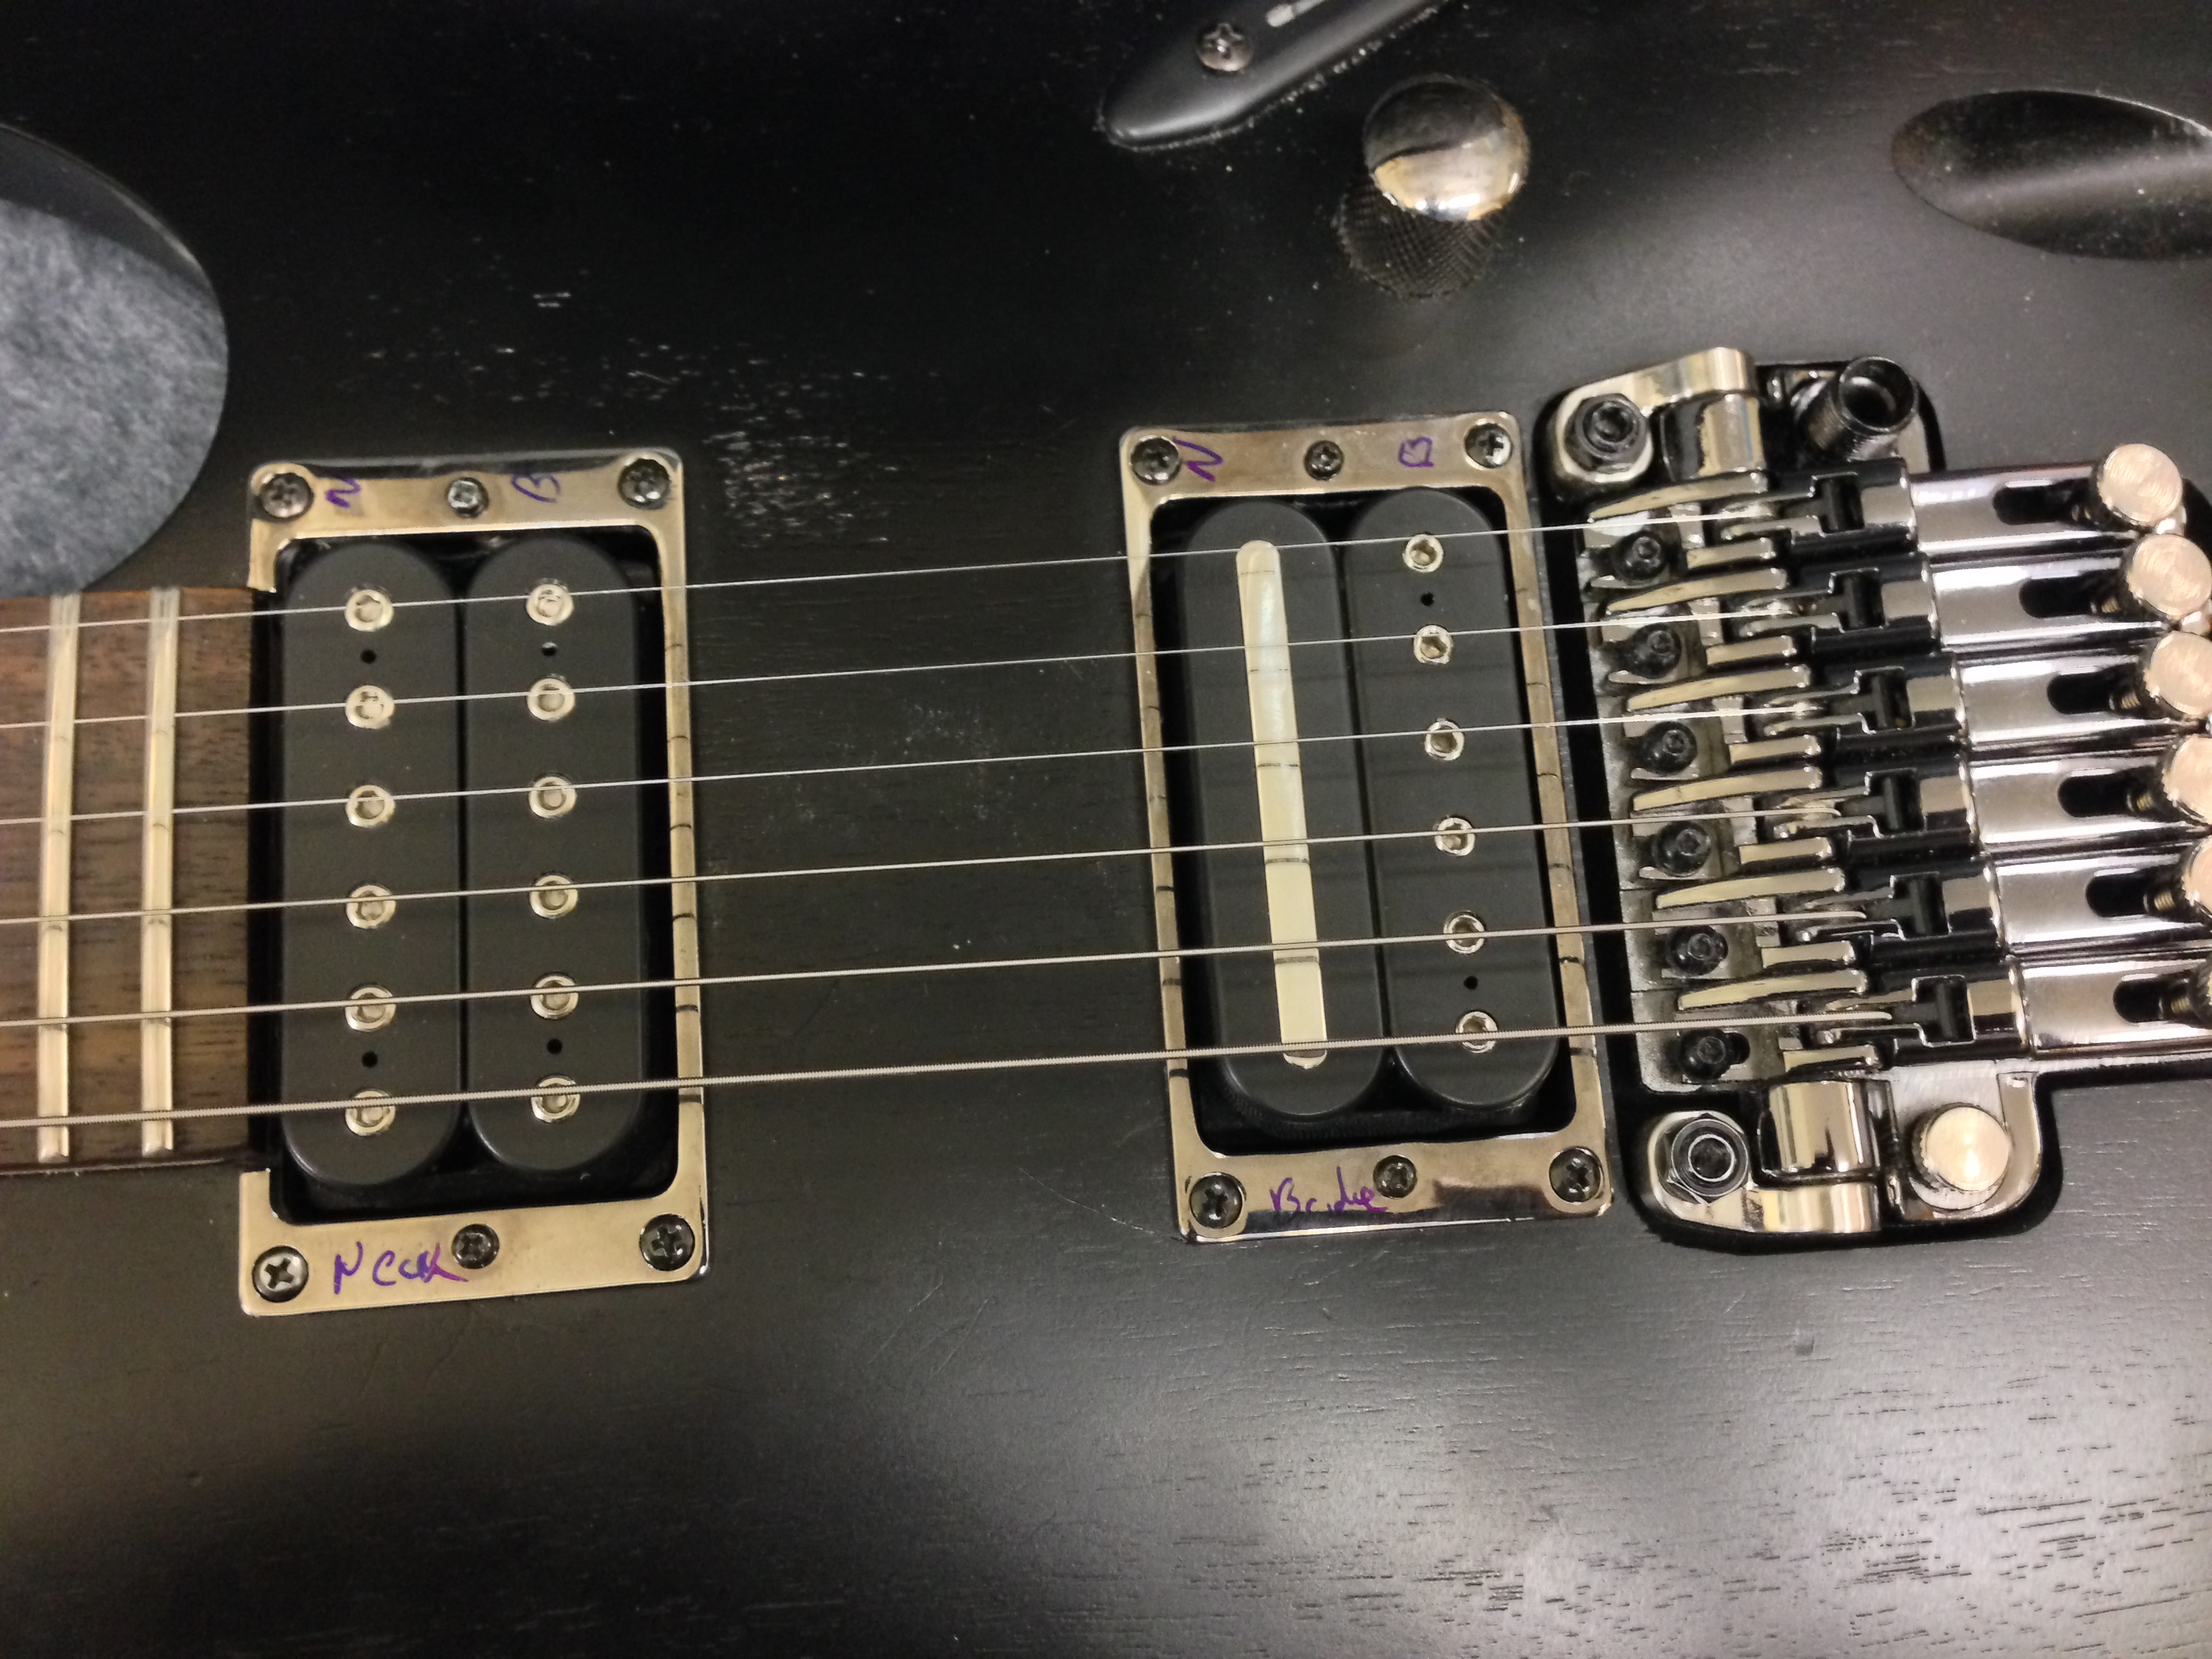 Great Hh Strat Wiring Thick How To Install Remote Start Alarm Regular Ibanez Rdgr Bass Wiring Dimarzio Pickups Young Bulldog Alarms Wiring WhiteSolar Electricity Diagram Changing The Pickups In An Ibanez S420 Guitar \u2013 The Inability To ..